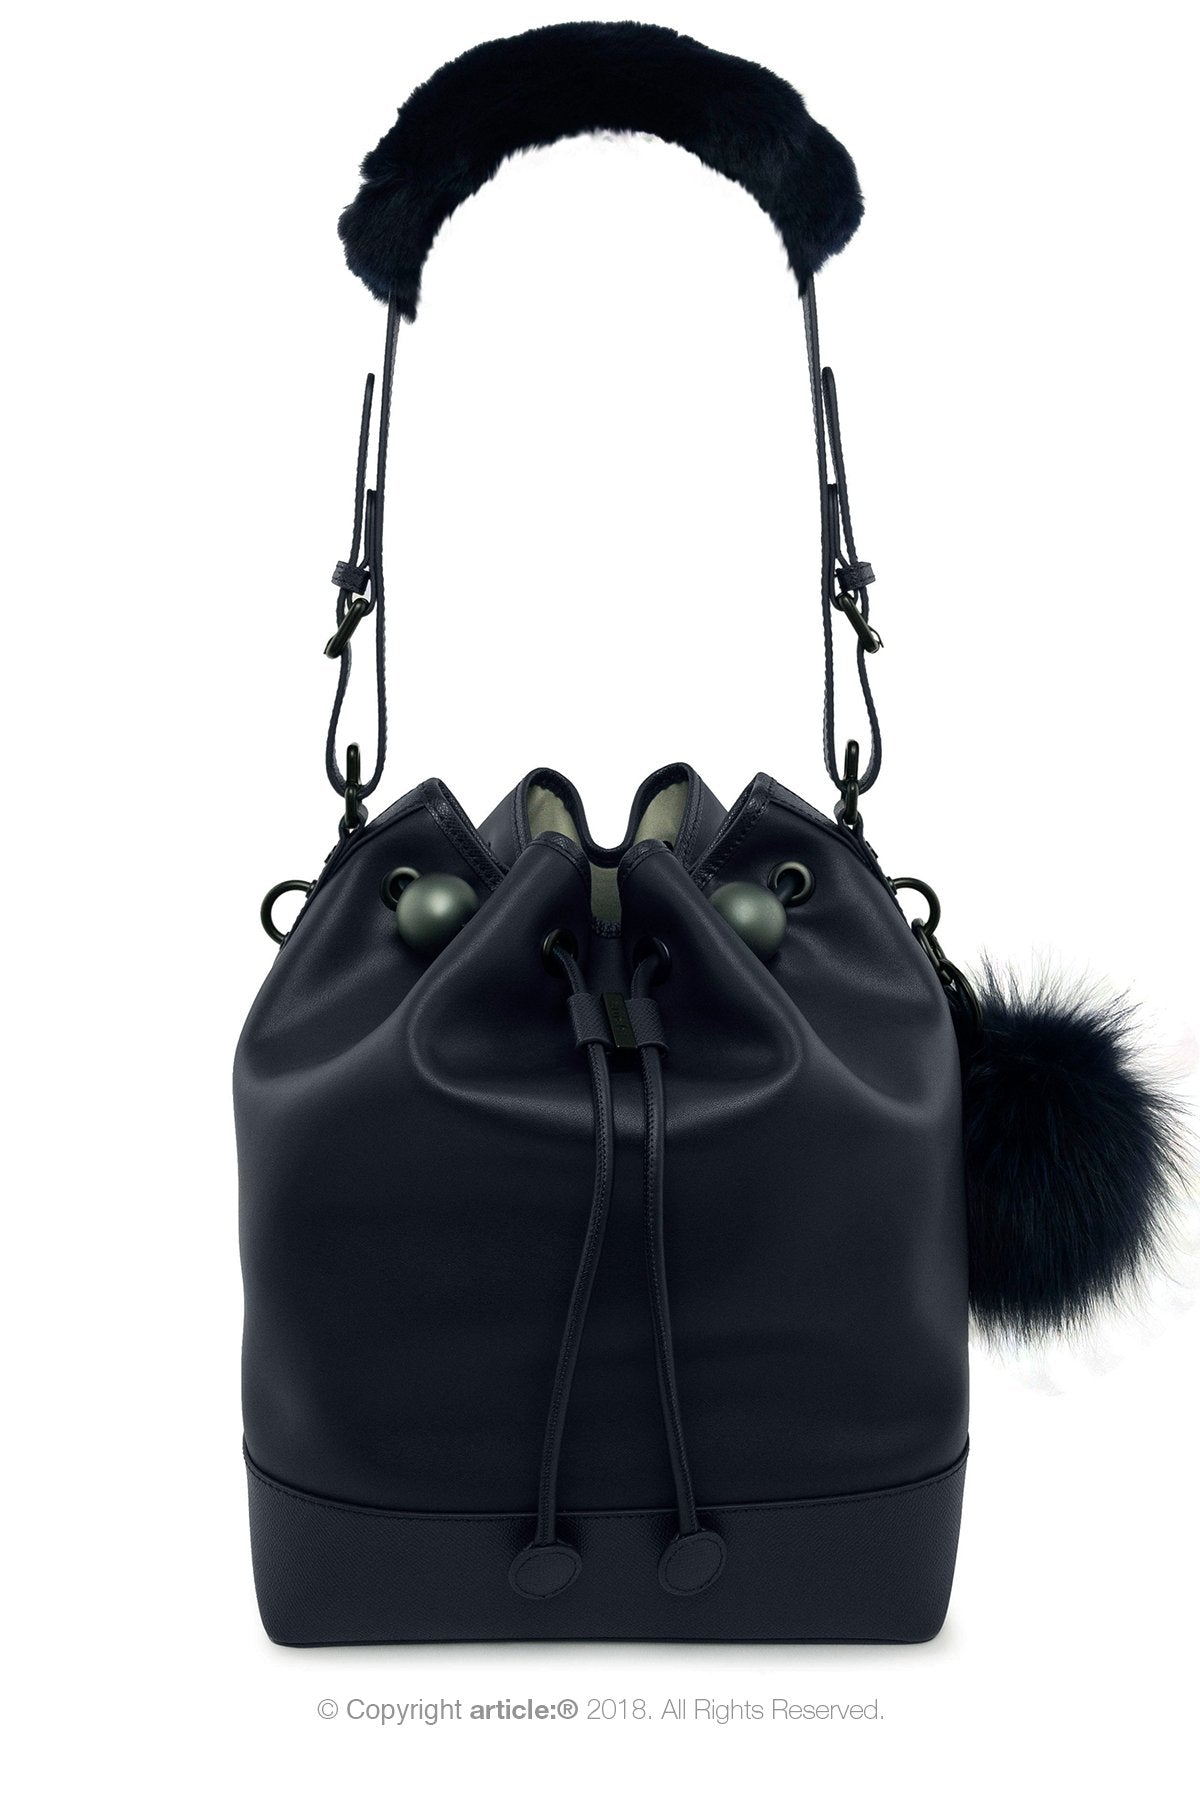 article: #400 Bag Charm / Keyring Pom Pom - Noir